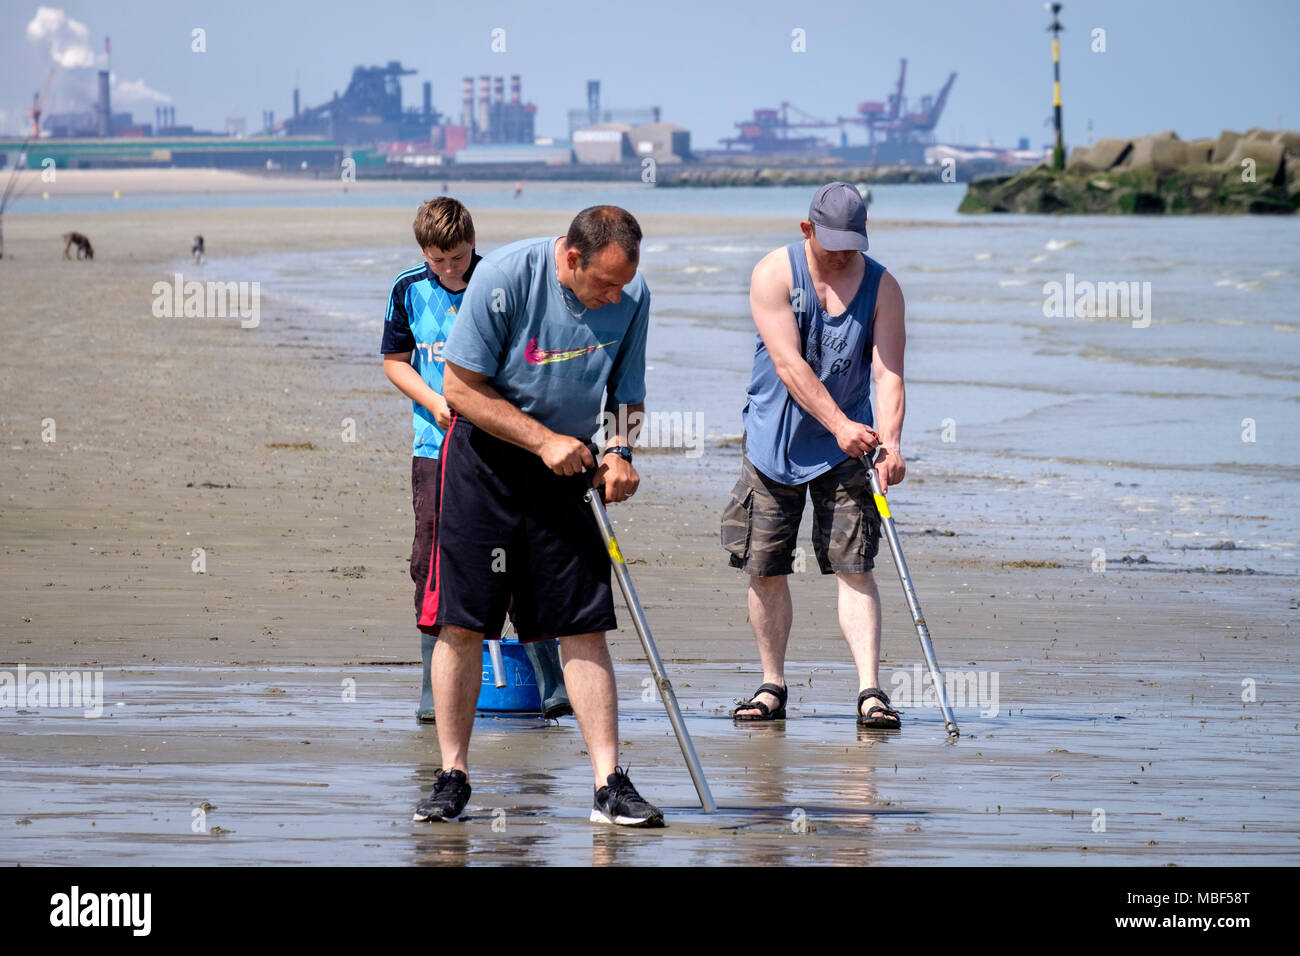 Fishermen catching lugworms or ragworms with a bait pump Dunkirk beach France - Stock Image